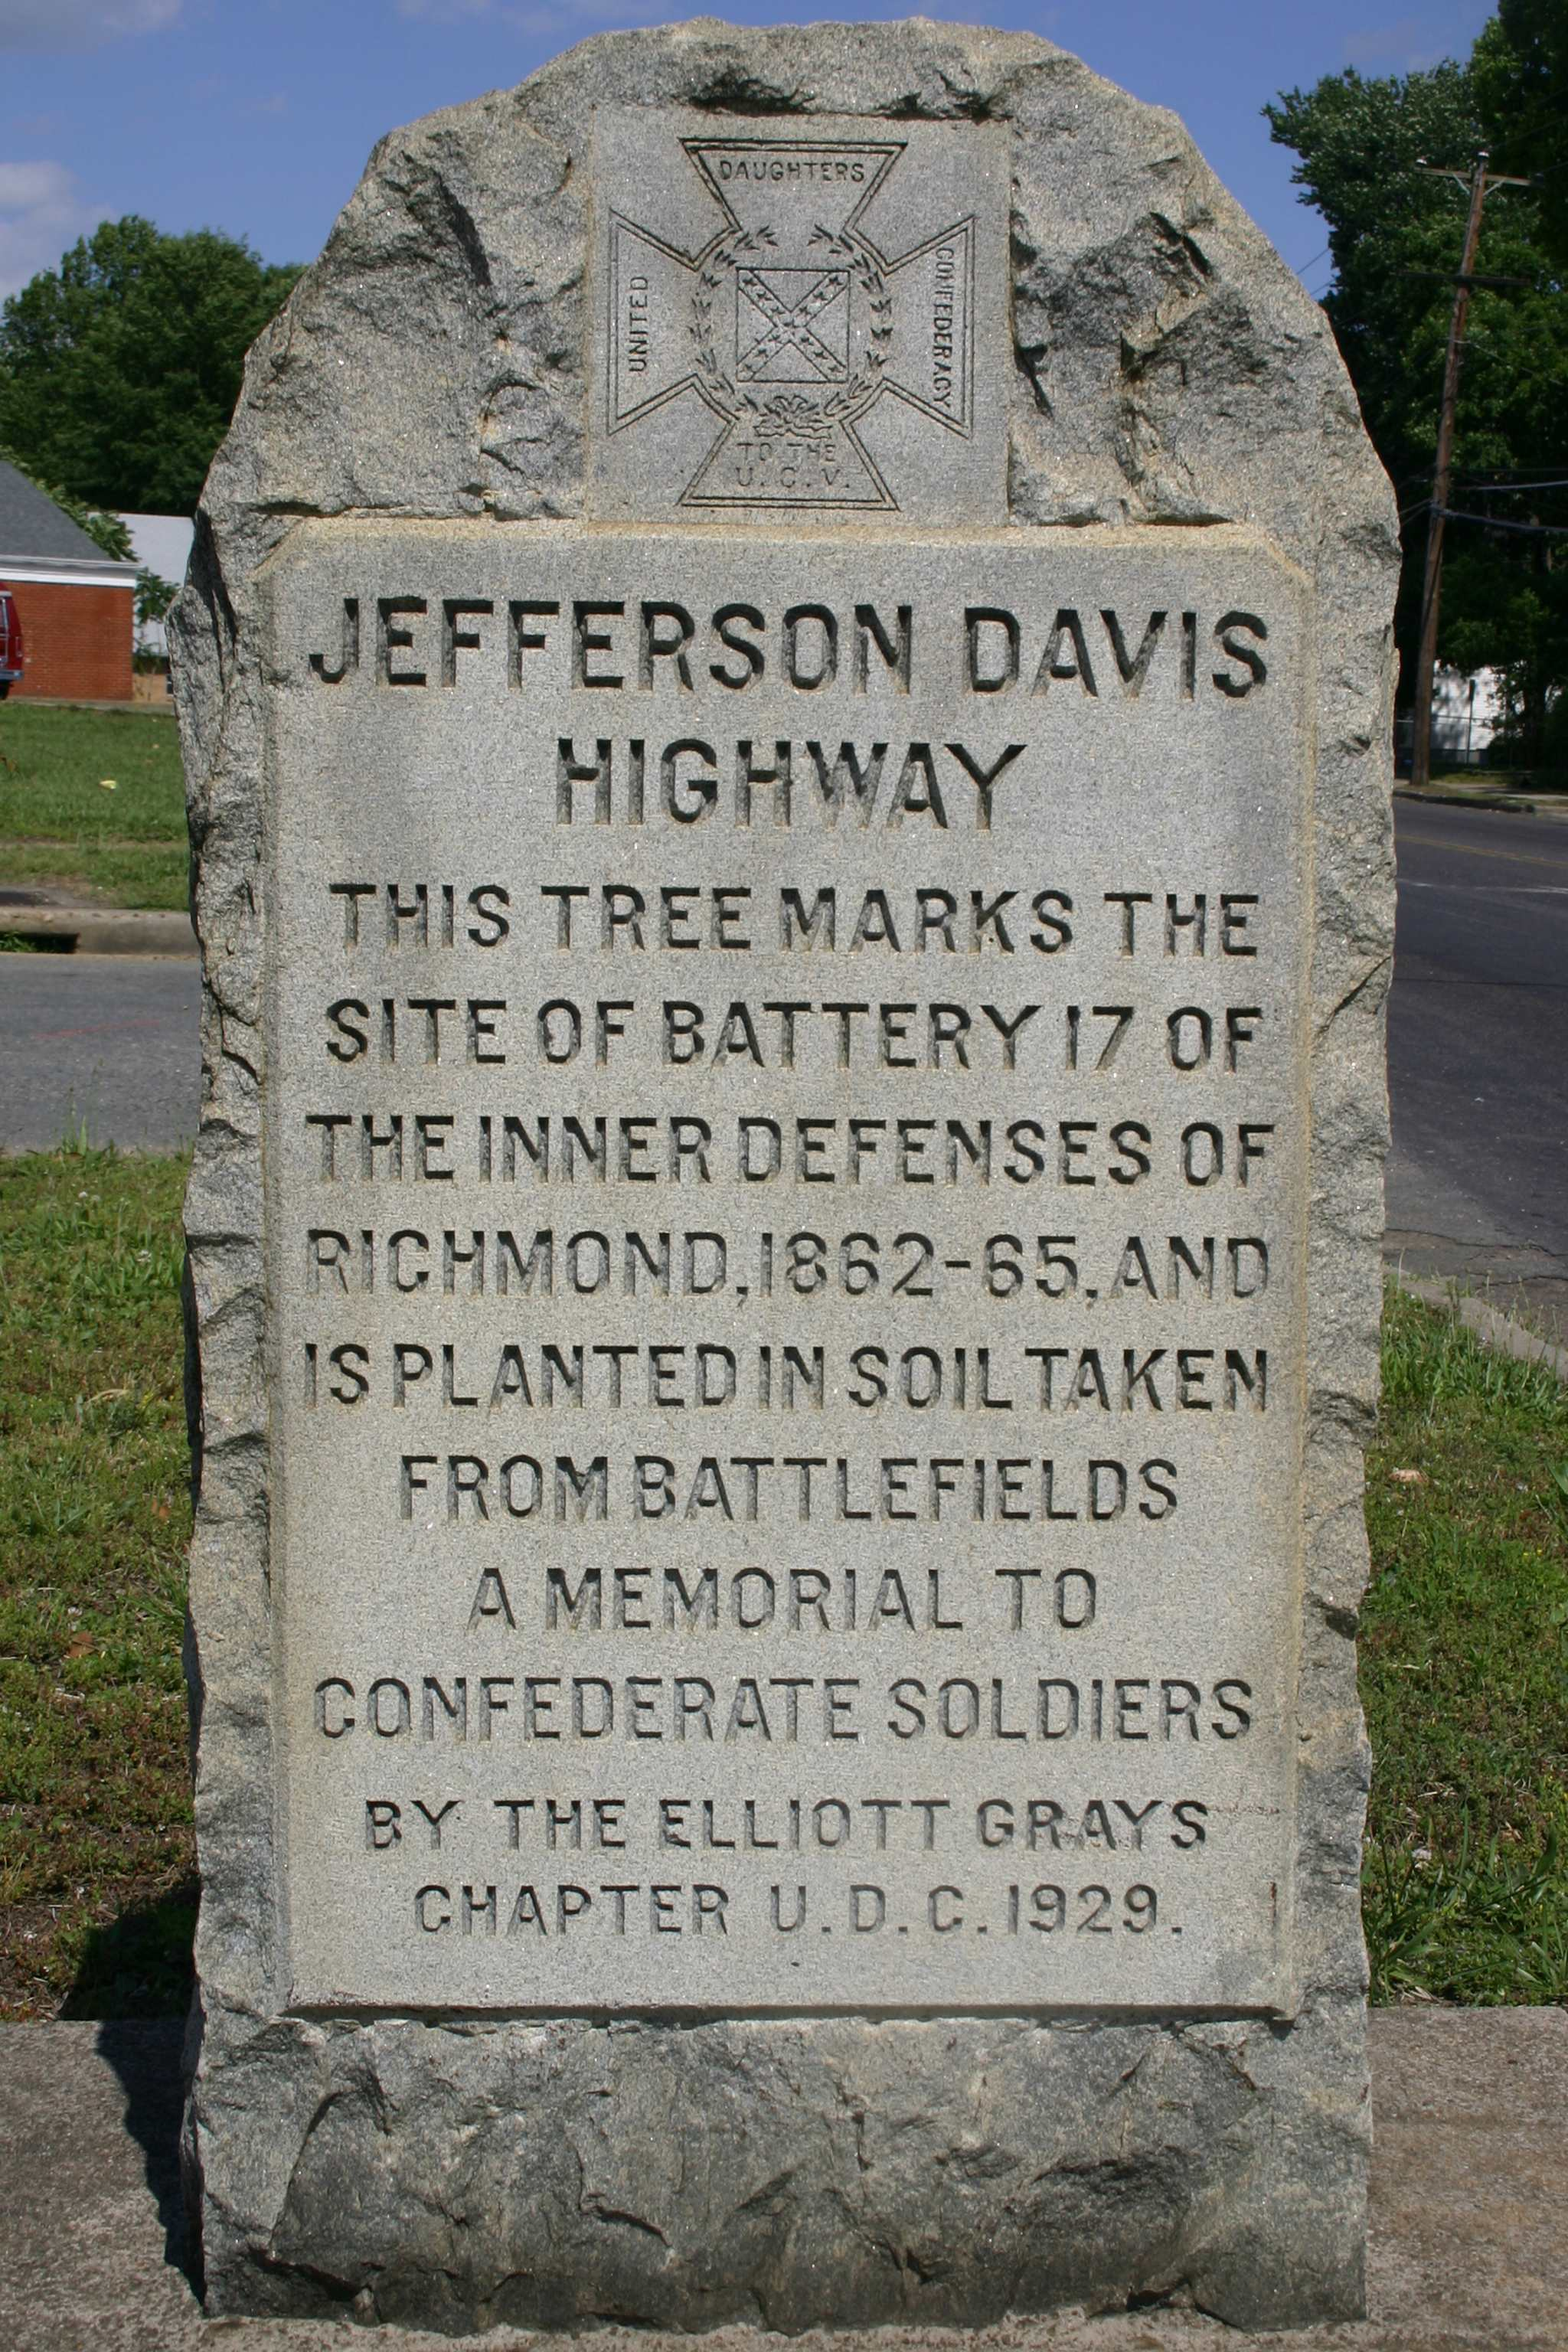 UDC Commemorative Highway Markers along the Jefferson Davis Highway in Virginia MPD